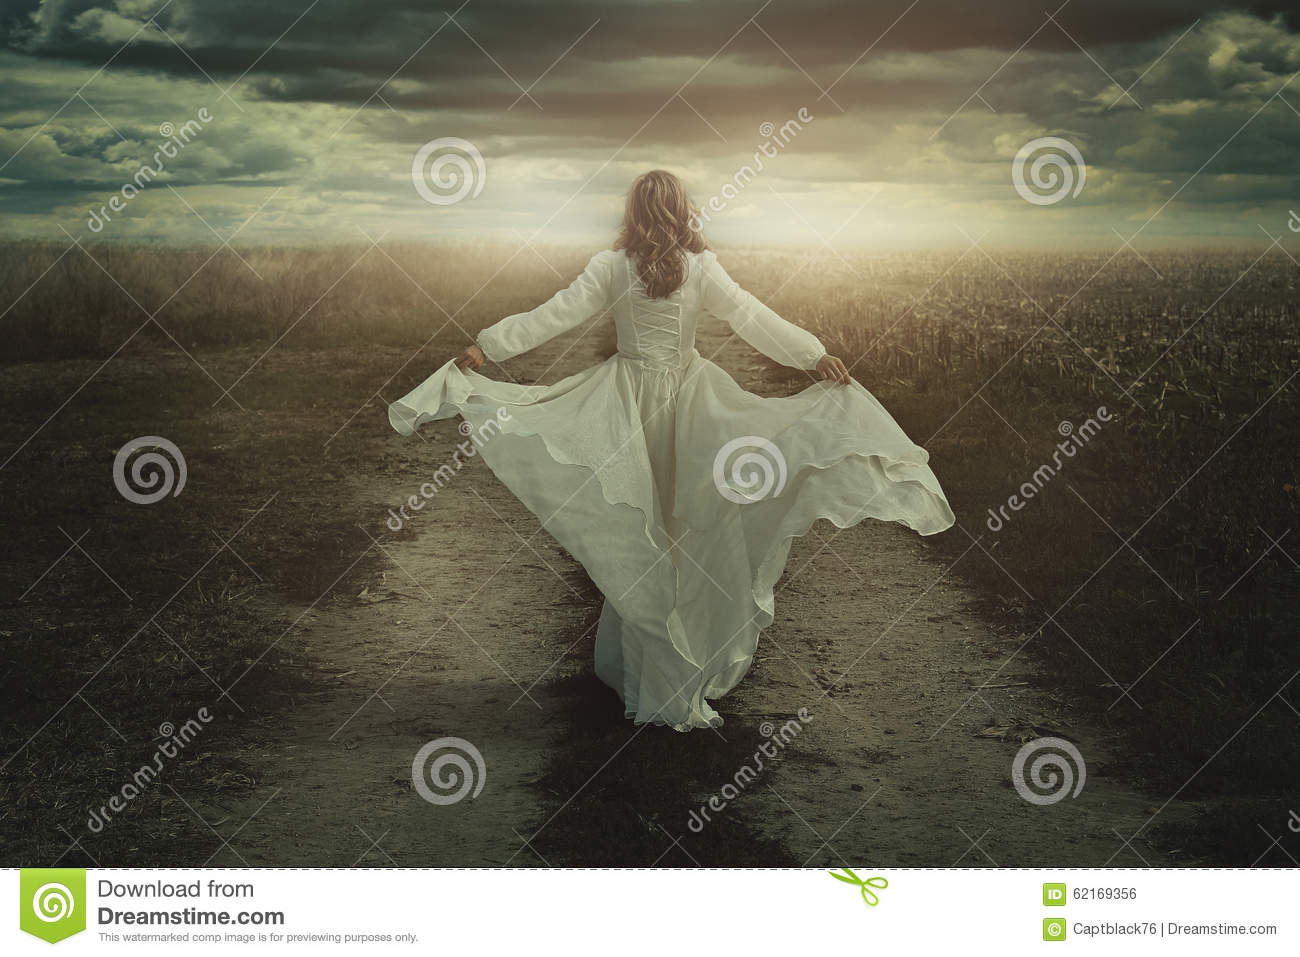 Woman running free in a desolate land